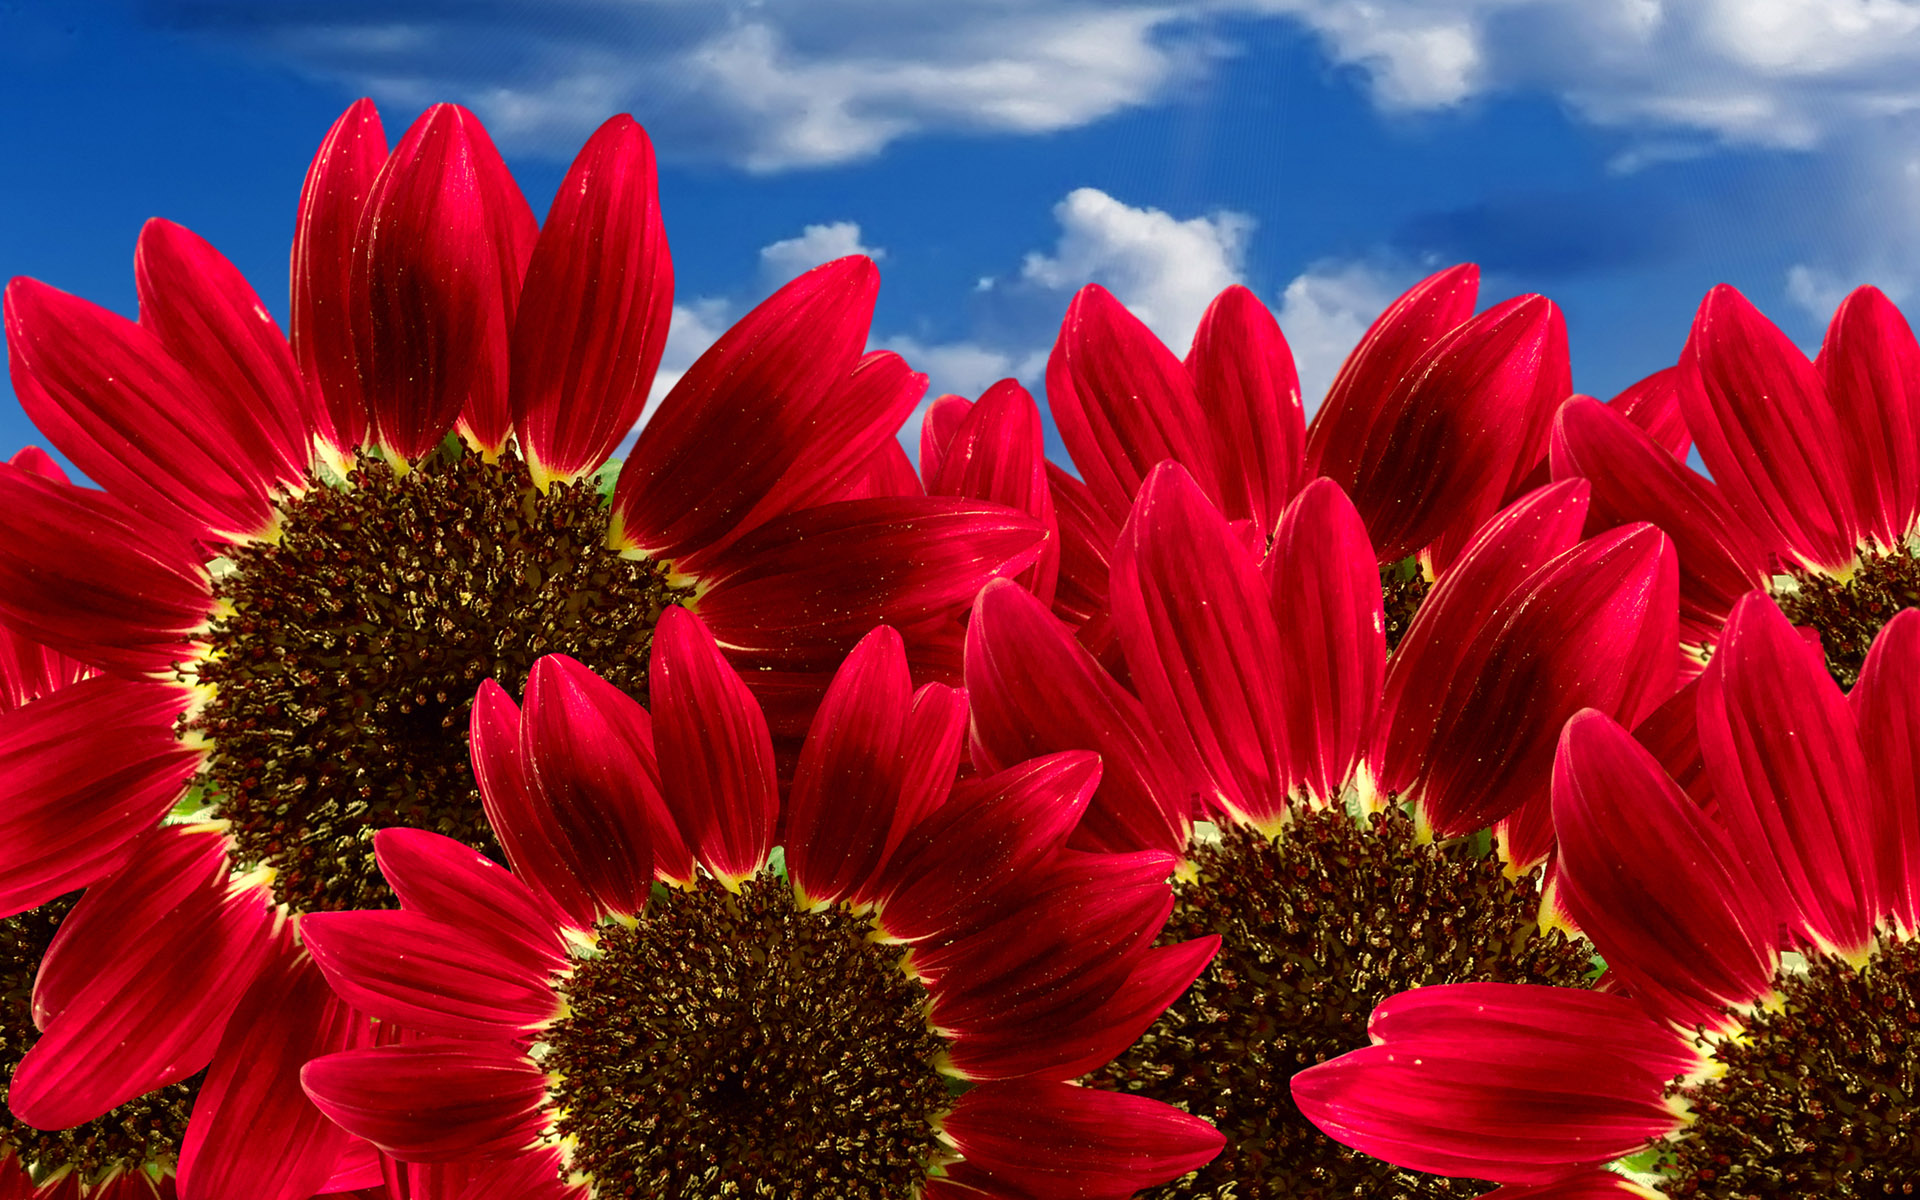 Wallpaper Of Flowers Blooming Pure Red Sunflowers Wallpaper 1920x1200